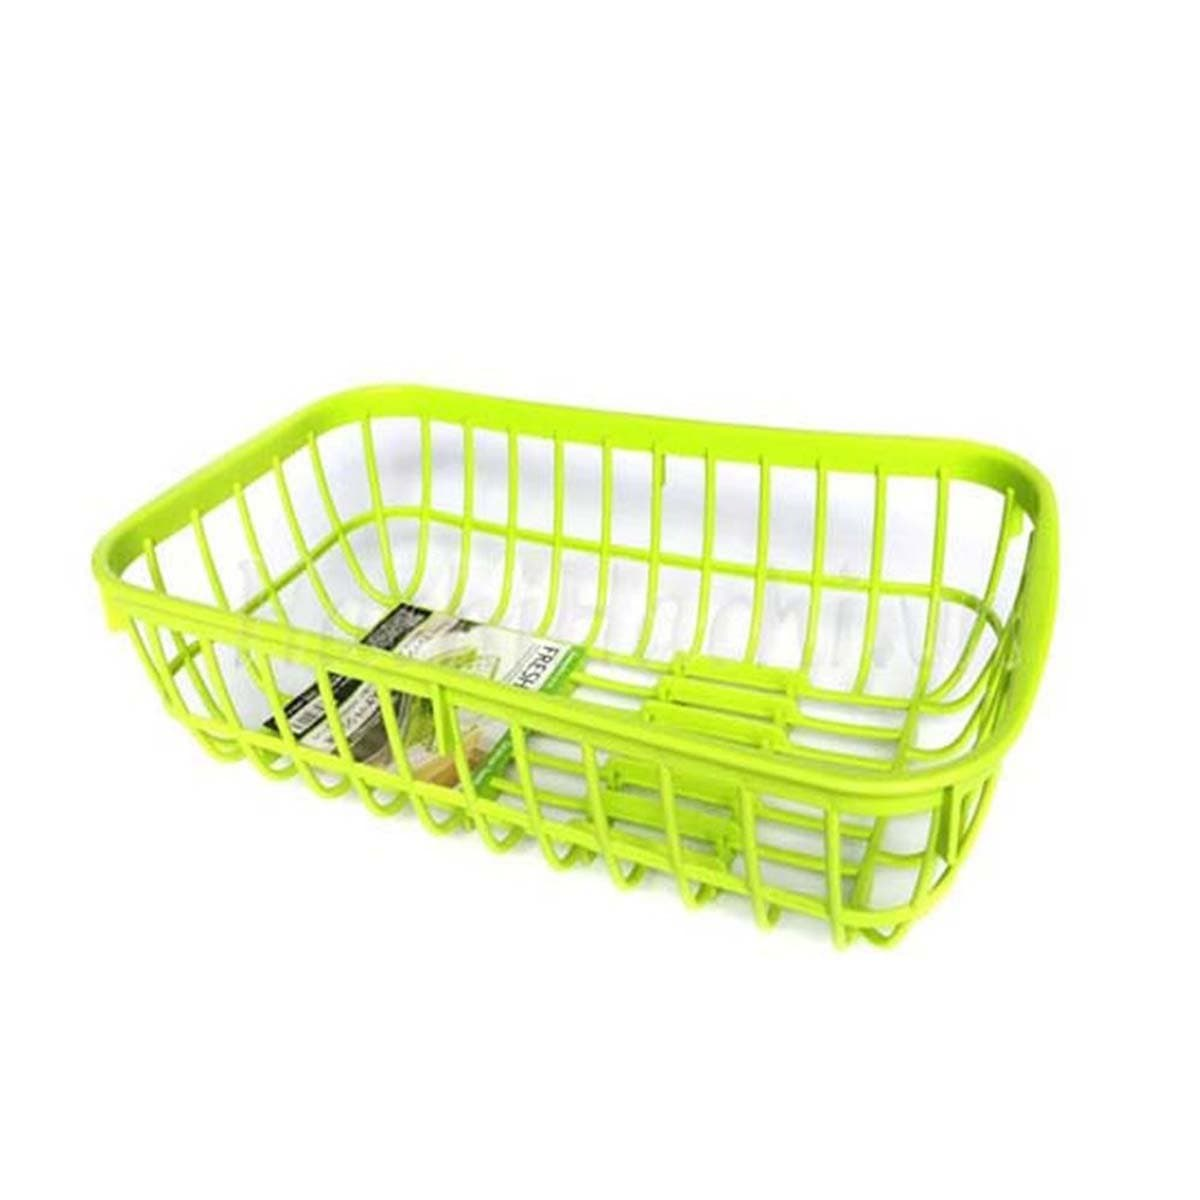 Japanese Plastic Drainage Storage Basket Rack For Sink Green